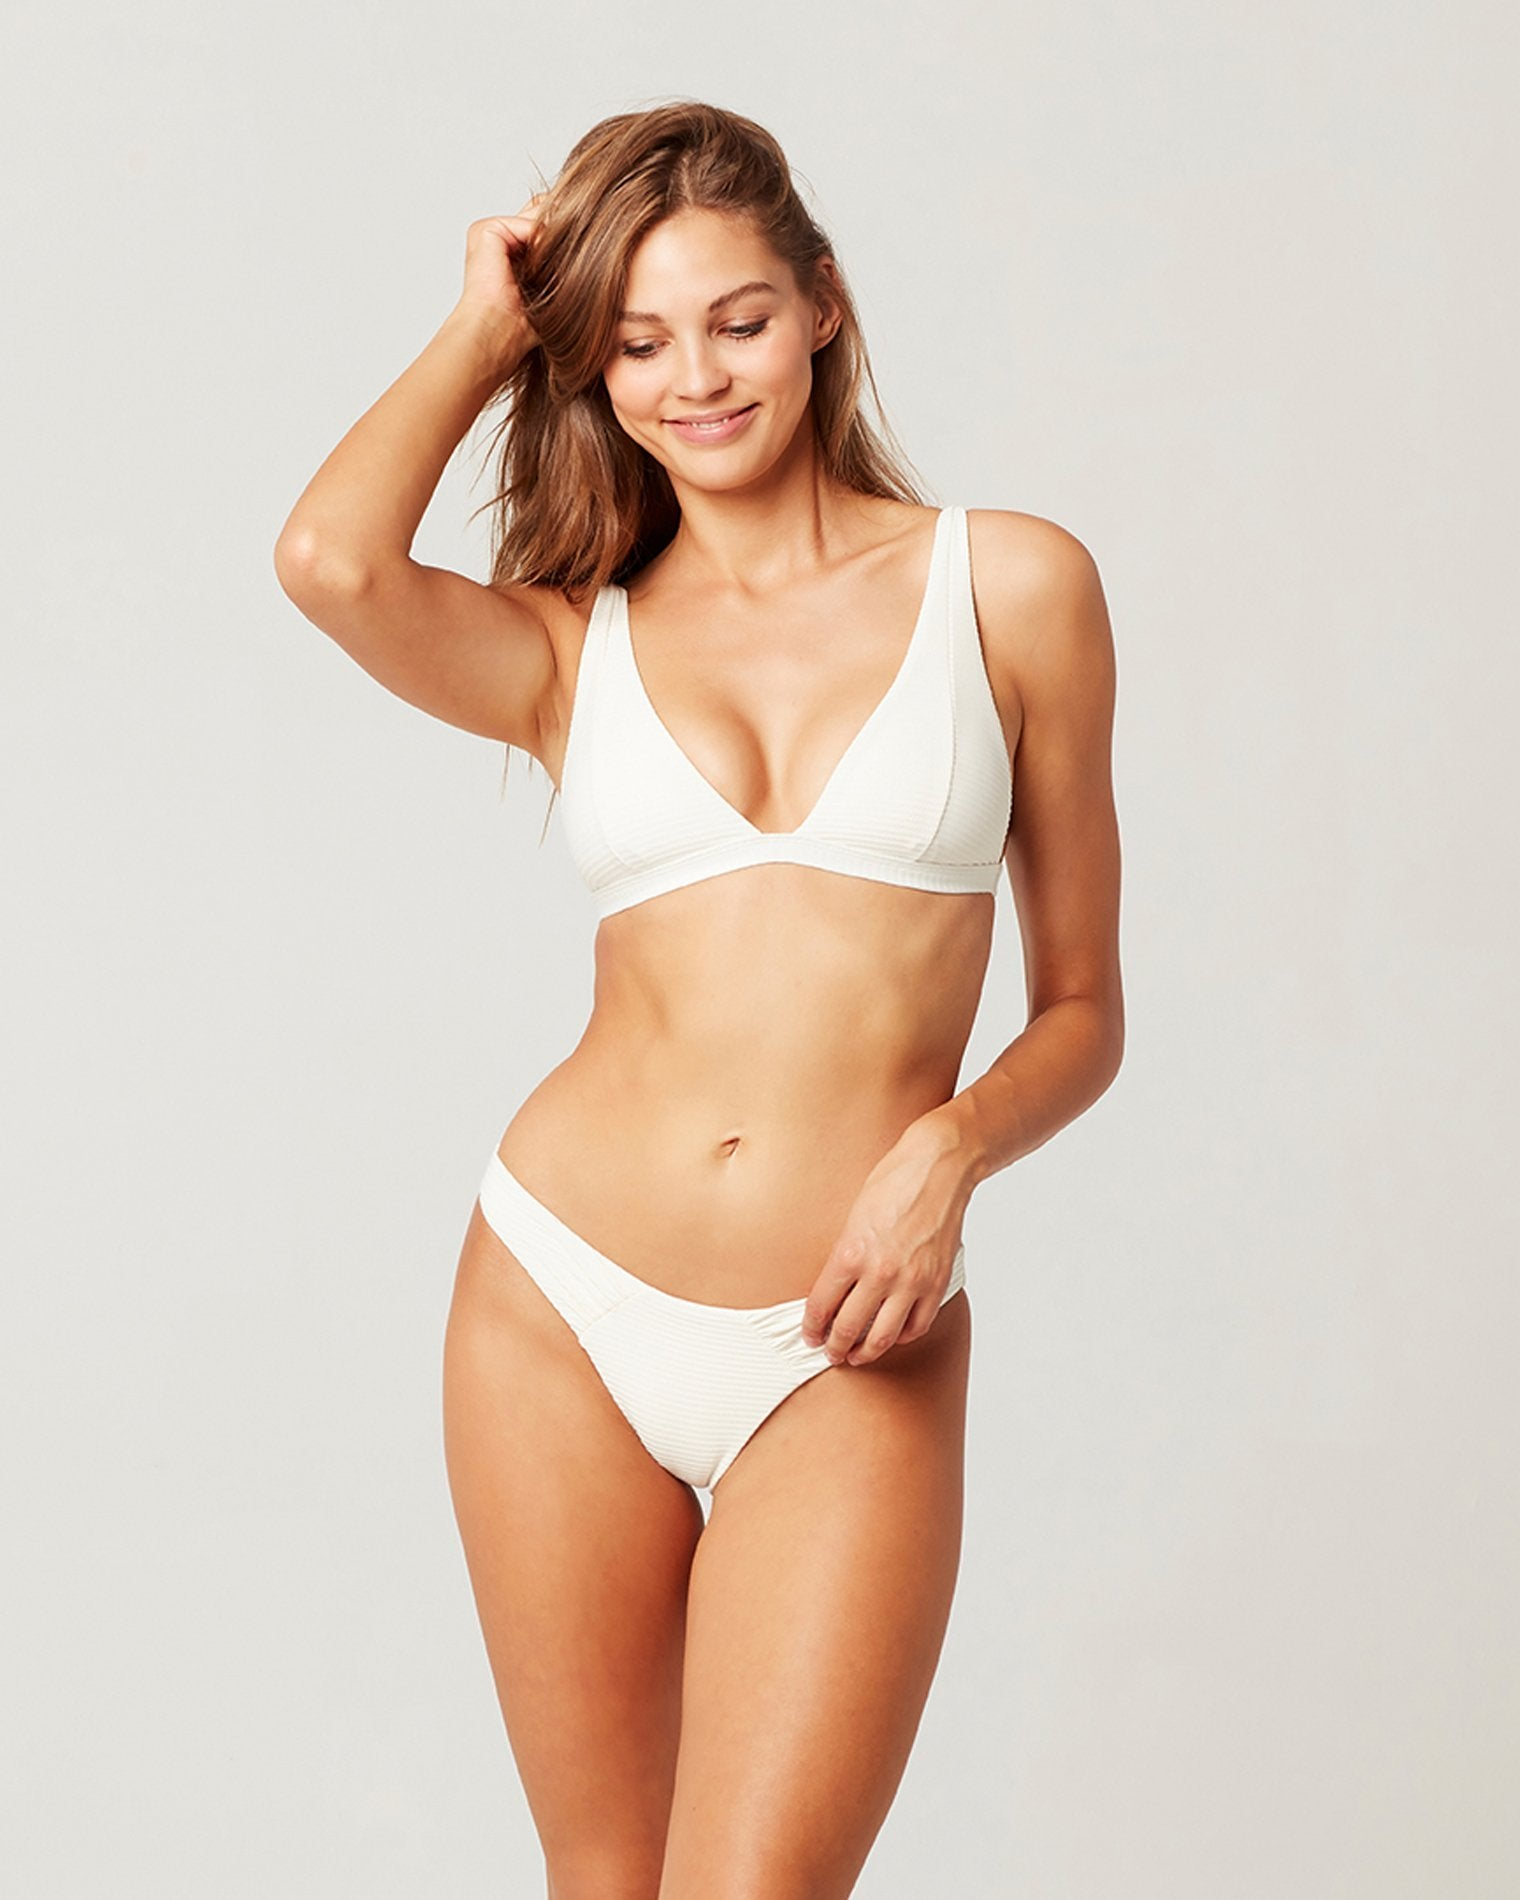 L*Space Eco Chic Repreve® Nina Top in Cream